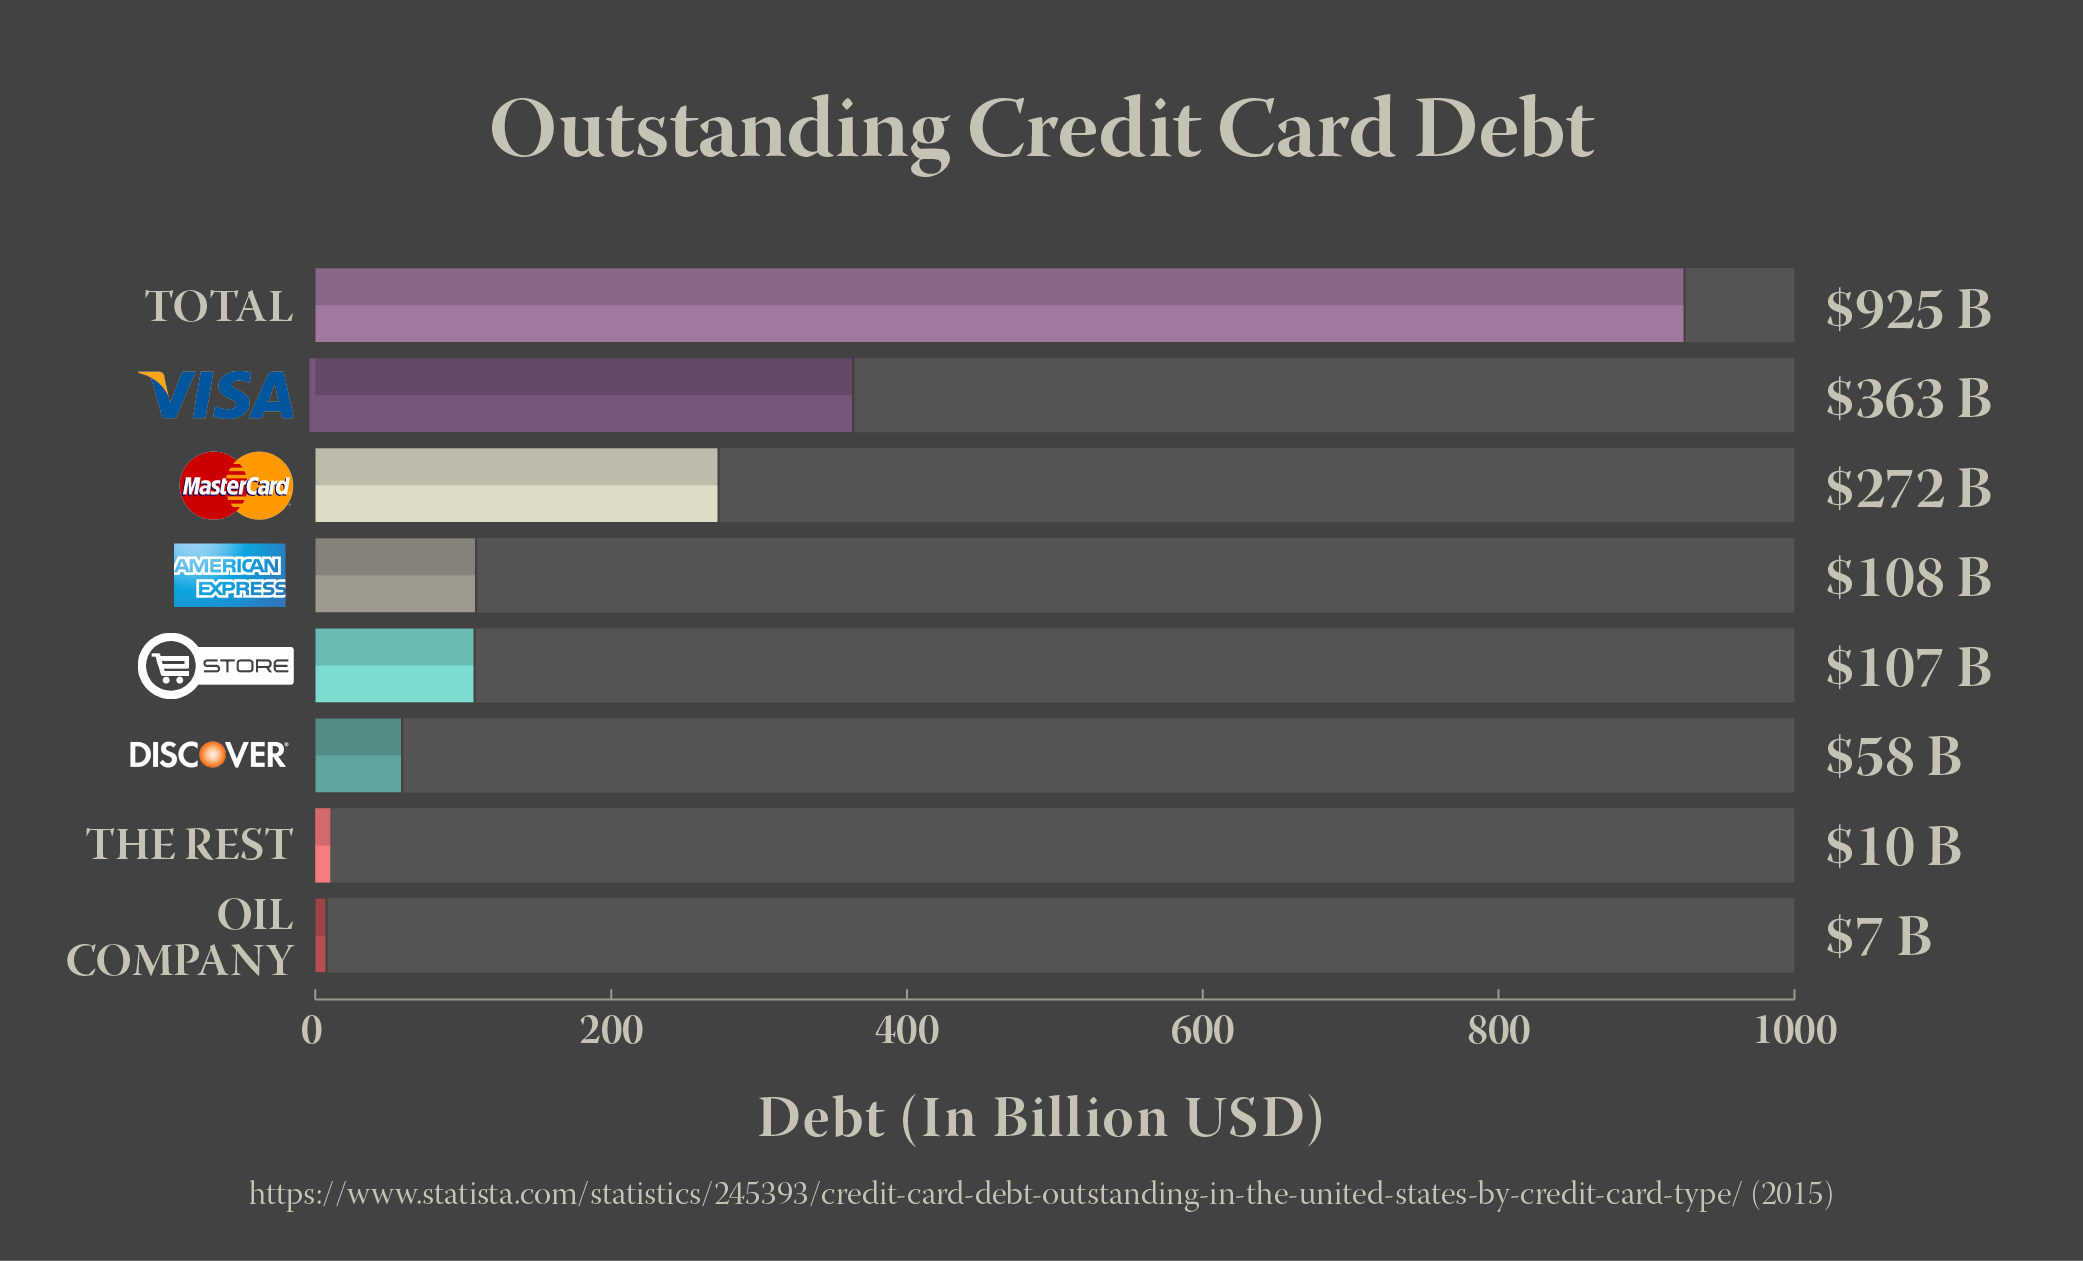 Outstanding Credit Card Debt